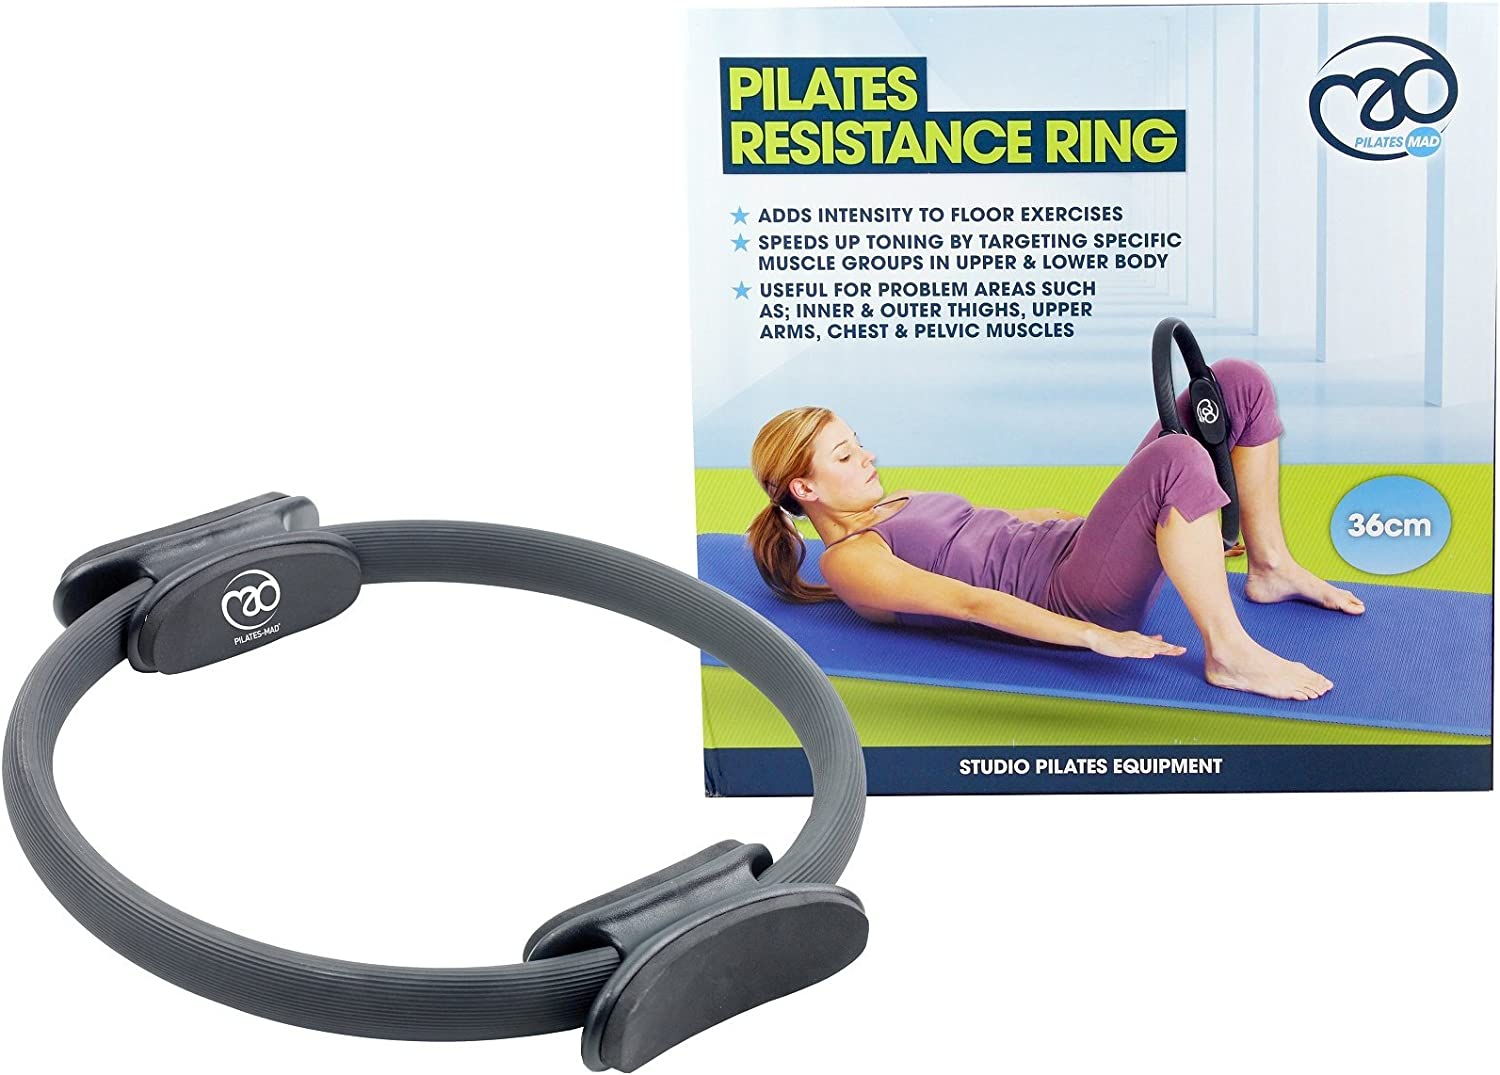 Fitness MAD Double Handle Pilates Resistance Ring